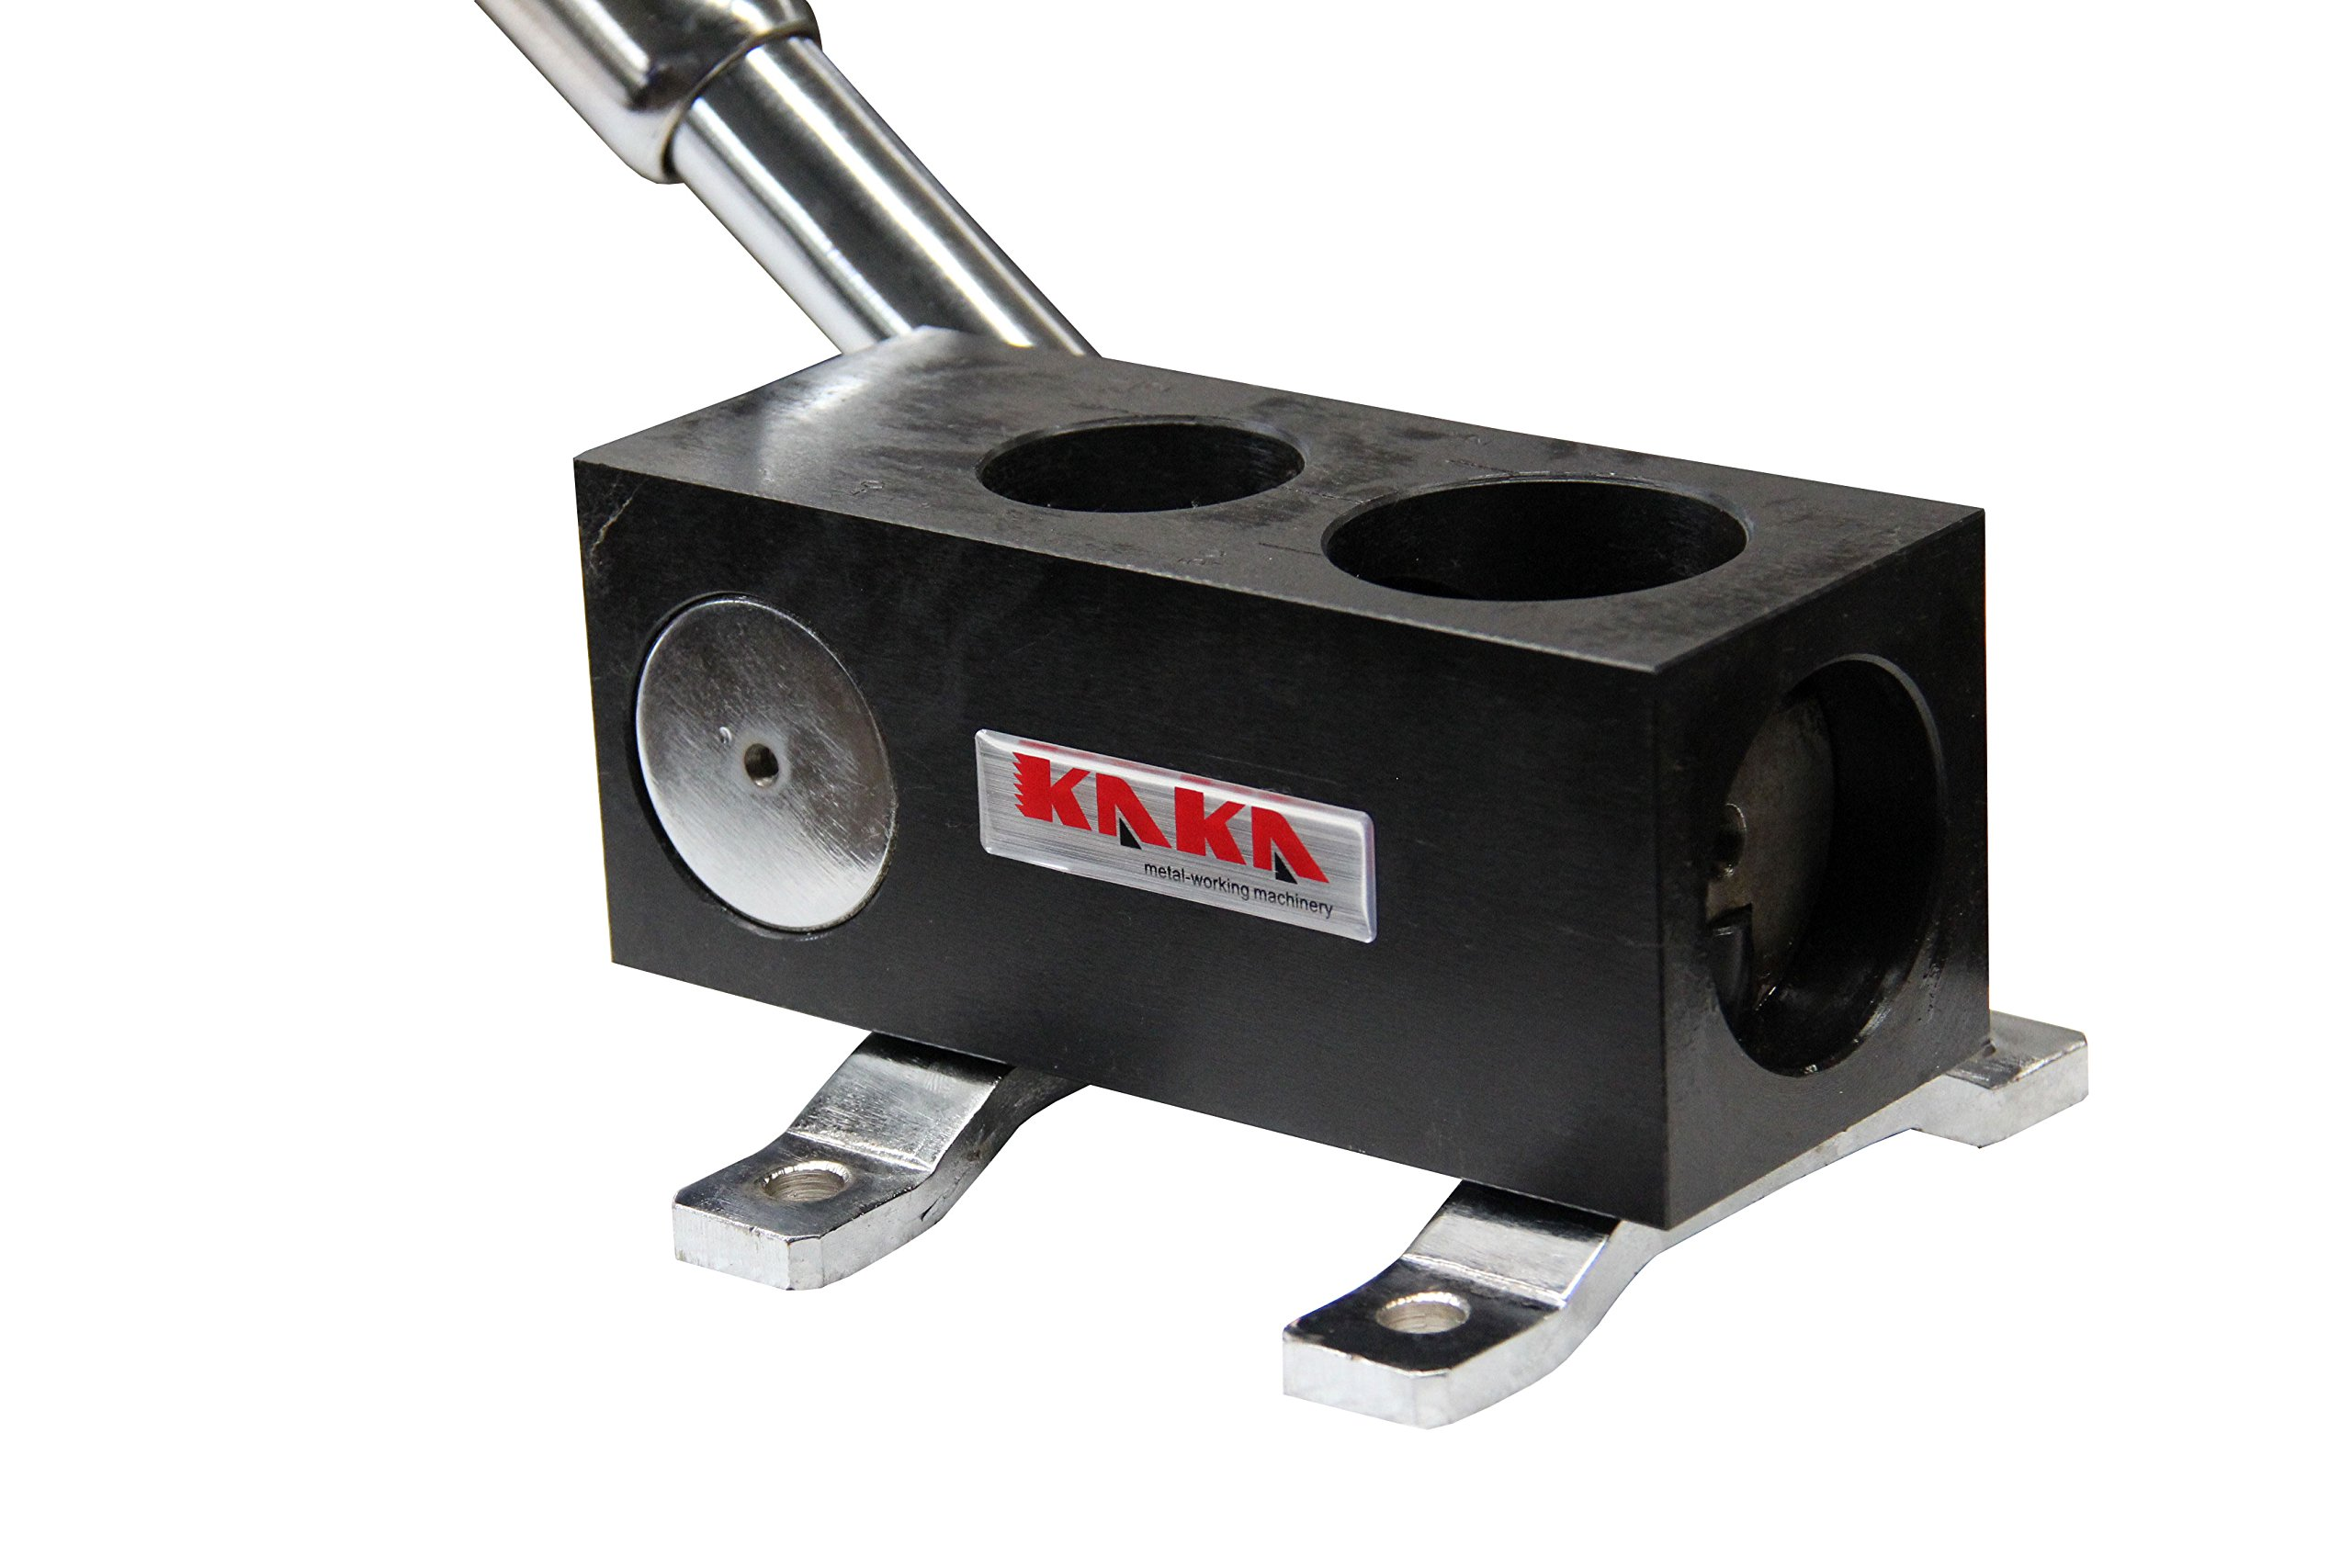 KAKA Industrial RA-3 Manual Tube Notcher, 1-1/2'', 2'' Light Weight, Solid Construction Tubing Notcher